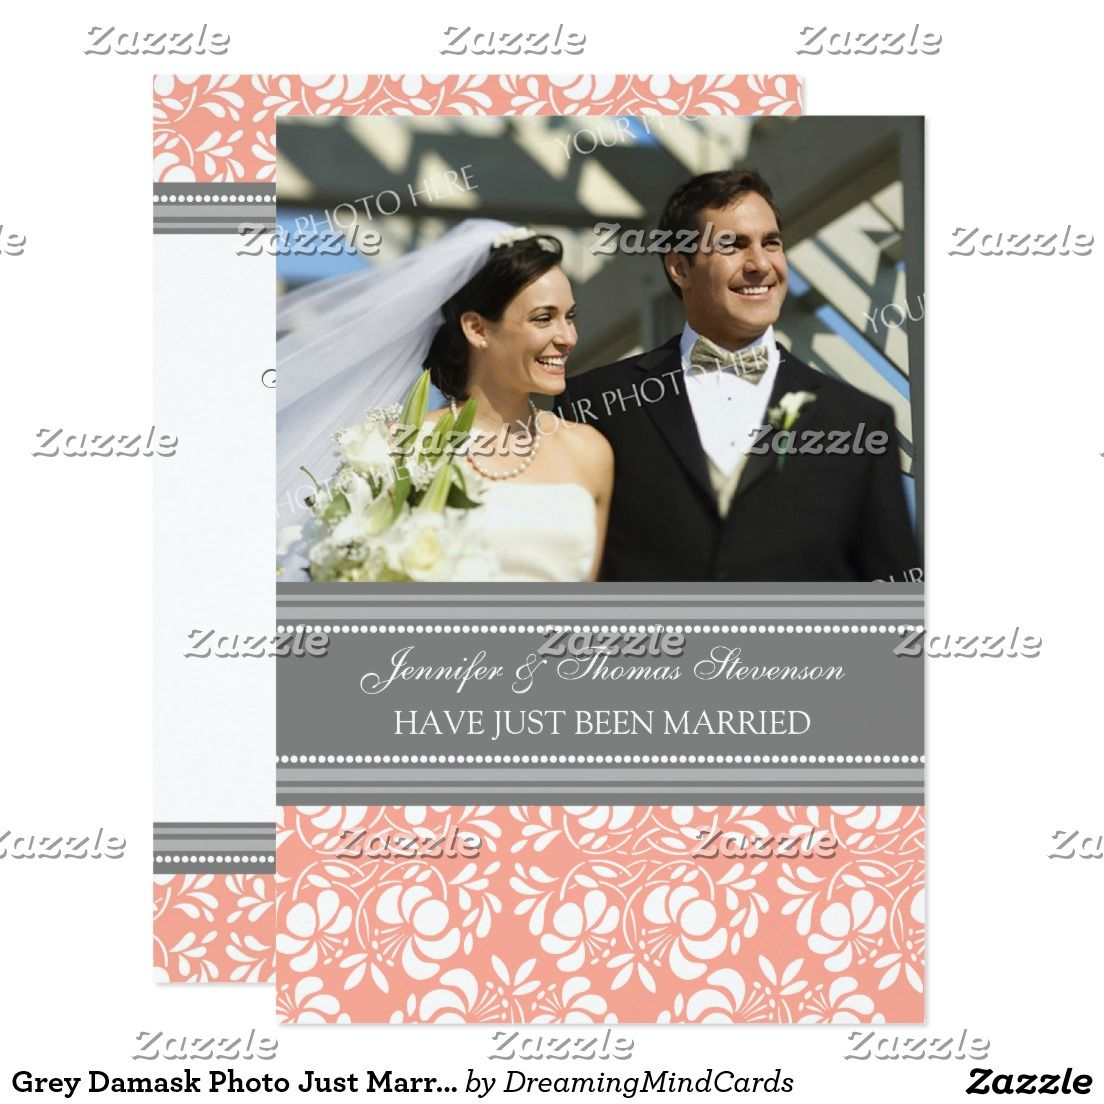 Grey Damask Photo Just Married Announcement Cards